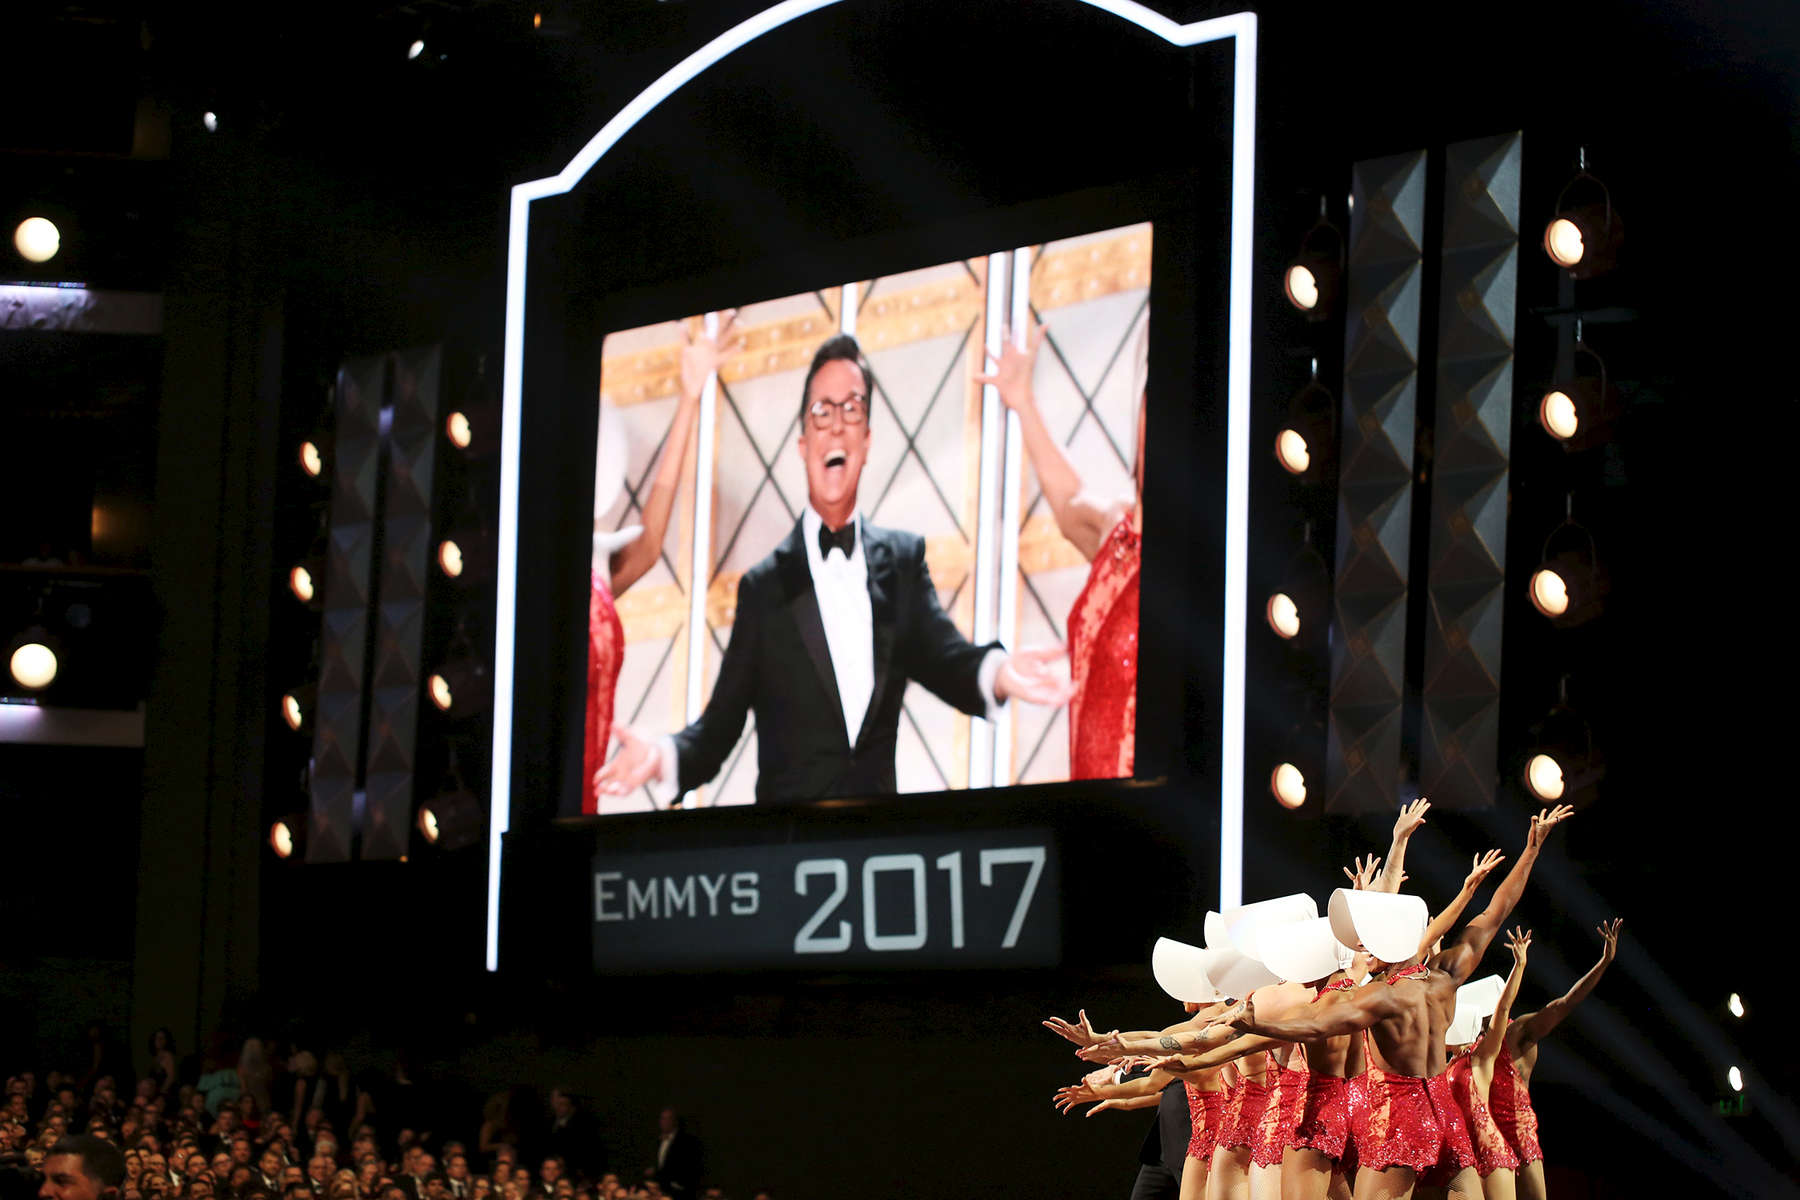 Host Stephen Colbert performs at the 69th Primetime Emmy Awards on Sunday, Sept. 17, 2017, at the Microsoft Theater in Los Angeles. (Photo by Matt Sayles/Invision for the Television Academy/AP Images)